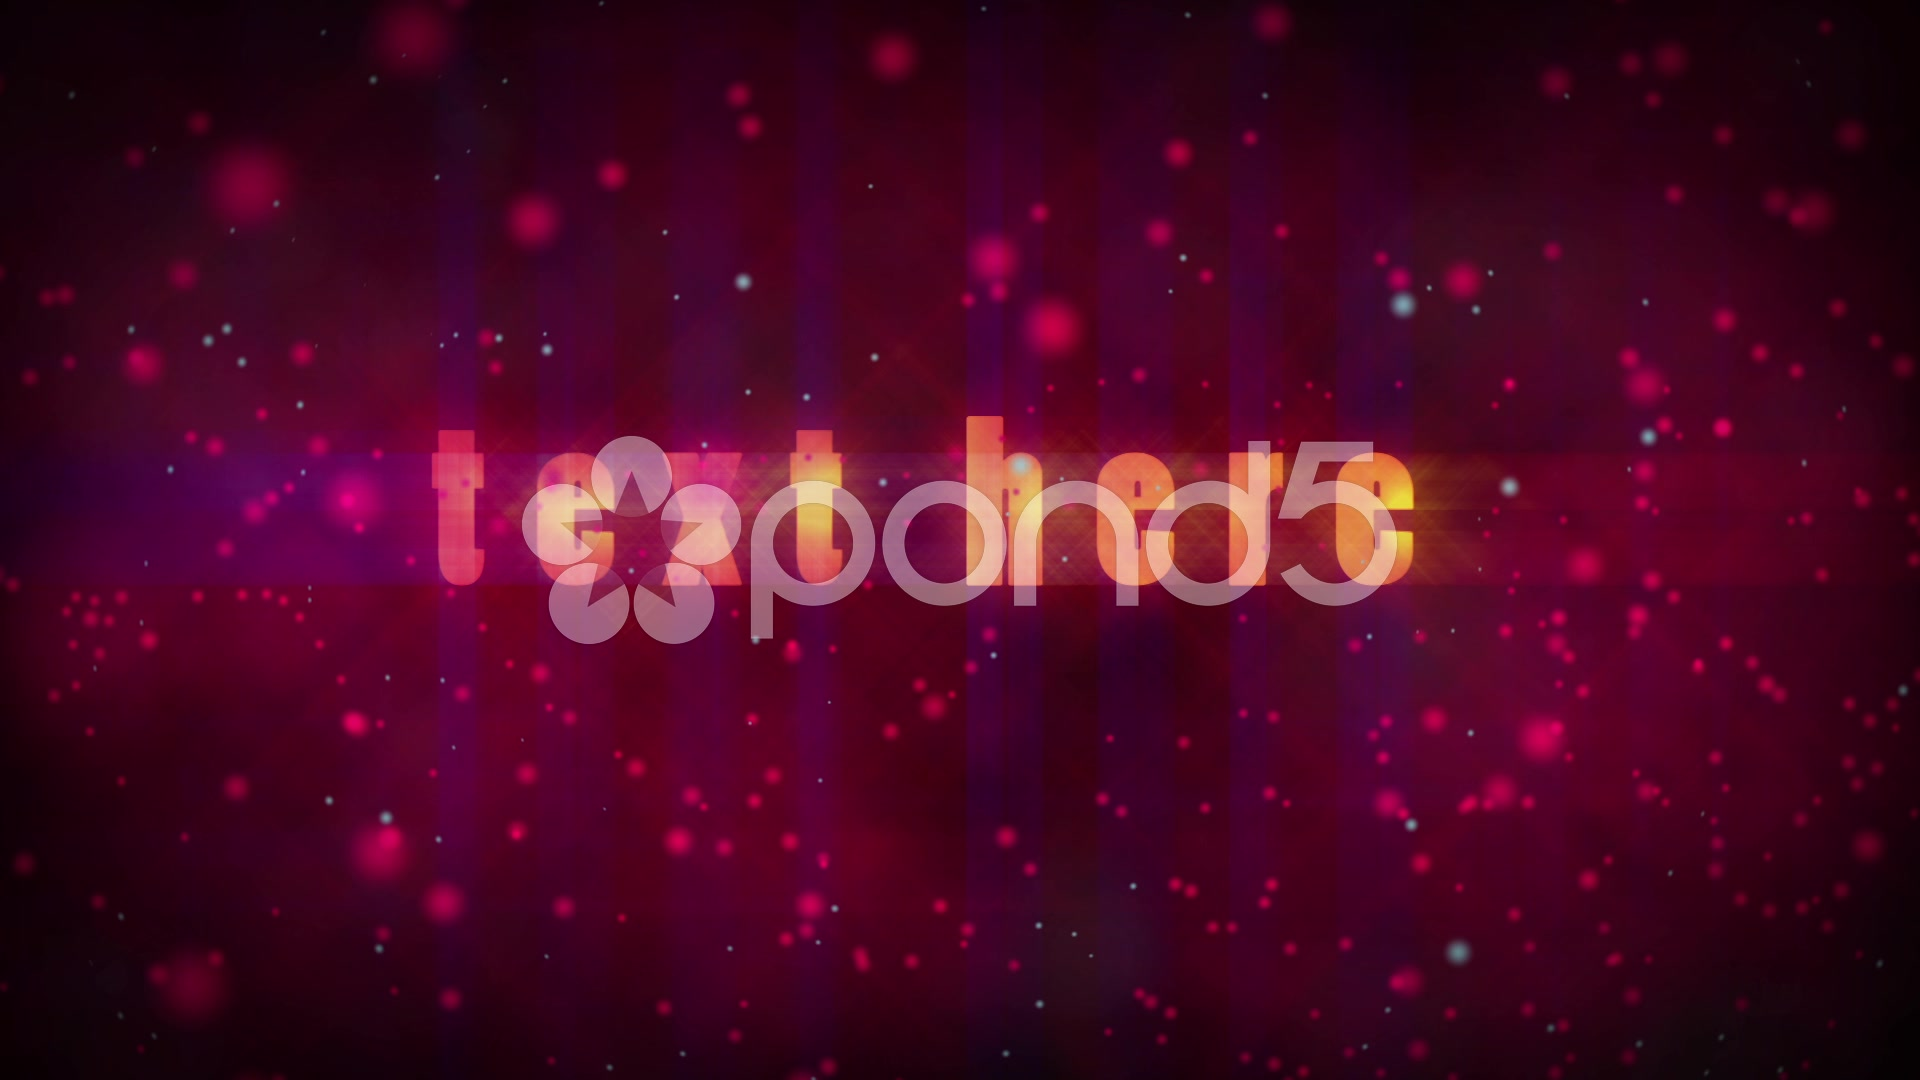 After Effects Project - Pond5 Coolorful Sci Fi Text 53216565